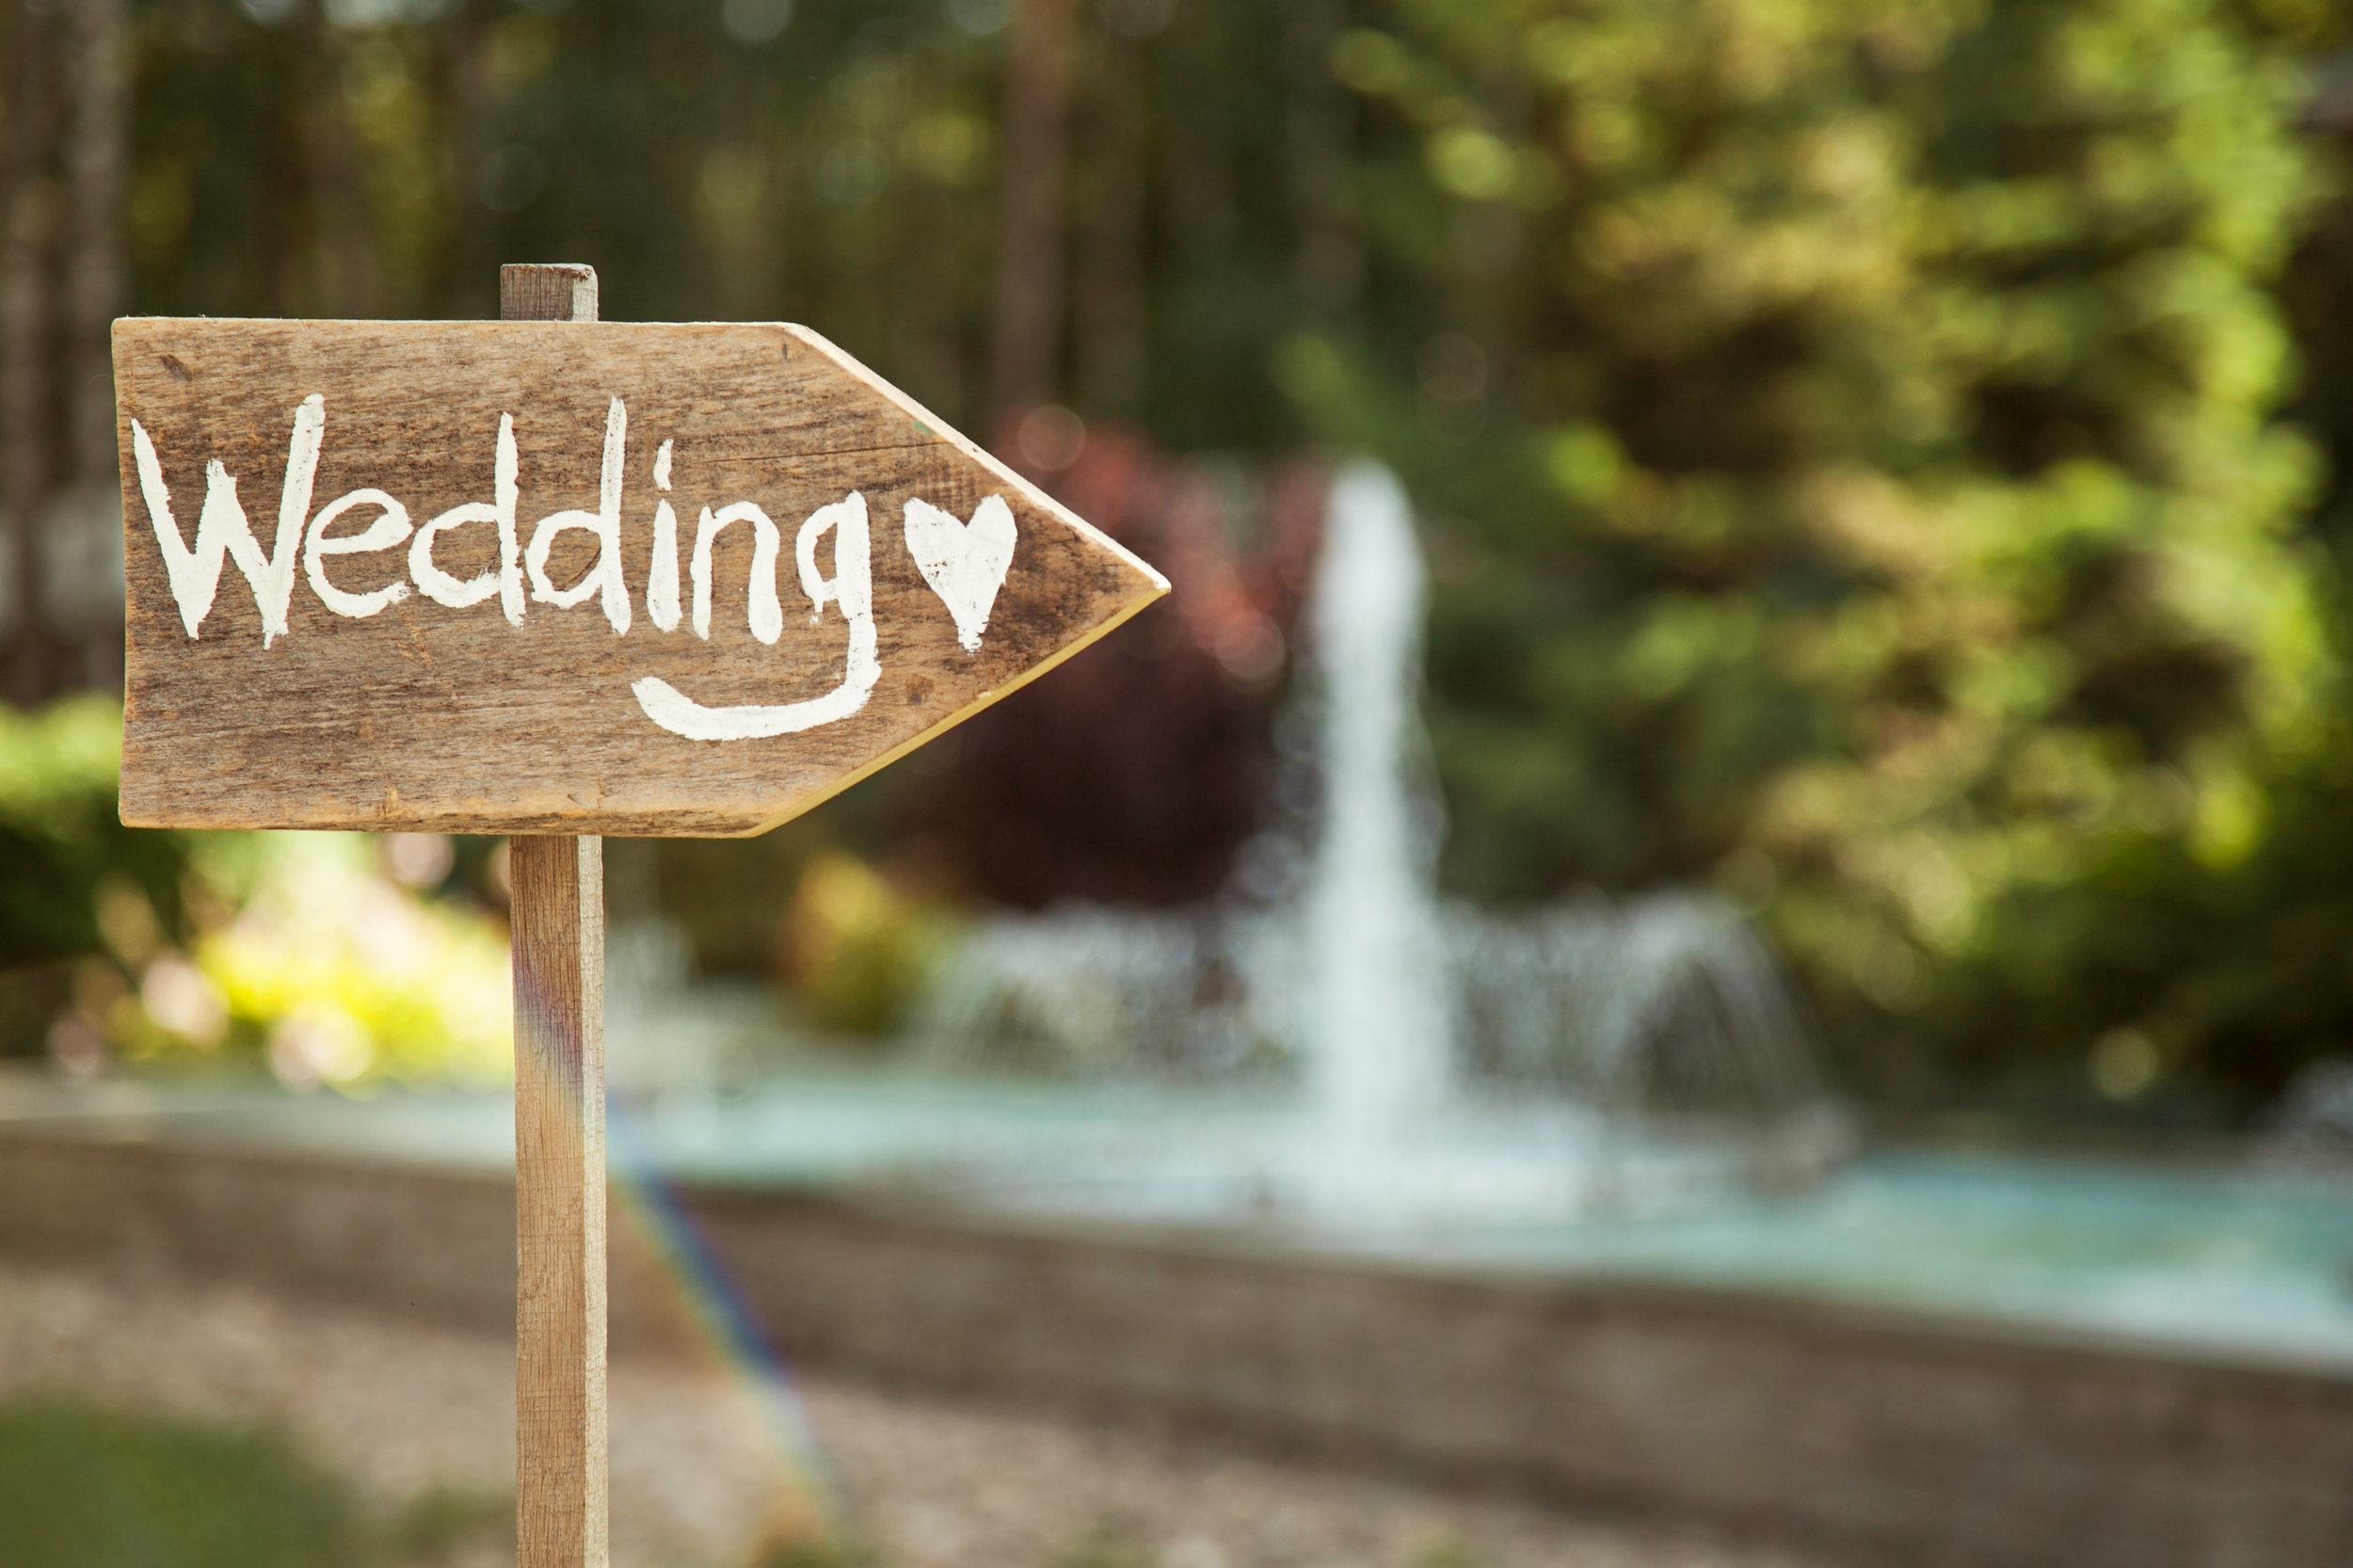 Servcies - Civil Celebrant Ceremony, including planning and face to face meetings £450Master of Ceremony only £450Both Civil Celebrant Ceremony and Master of Ceremony £800